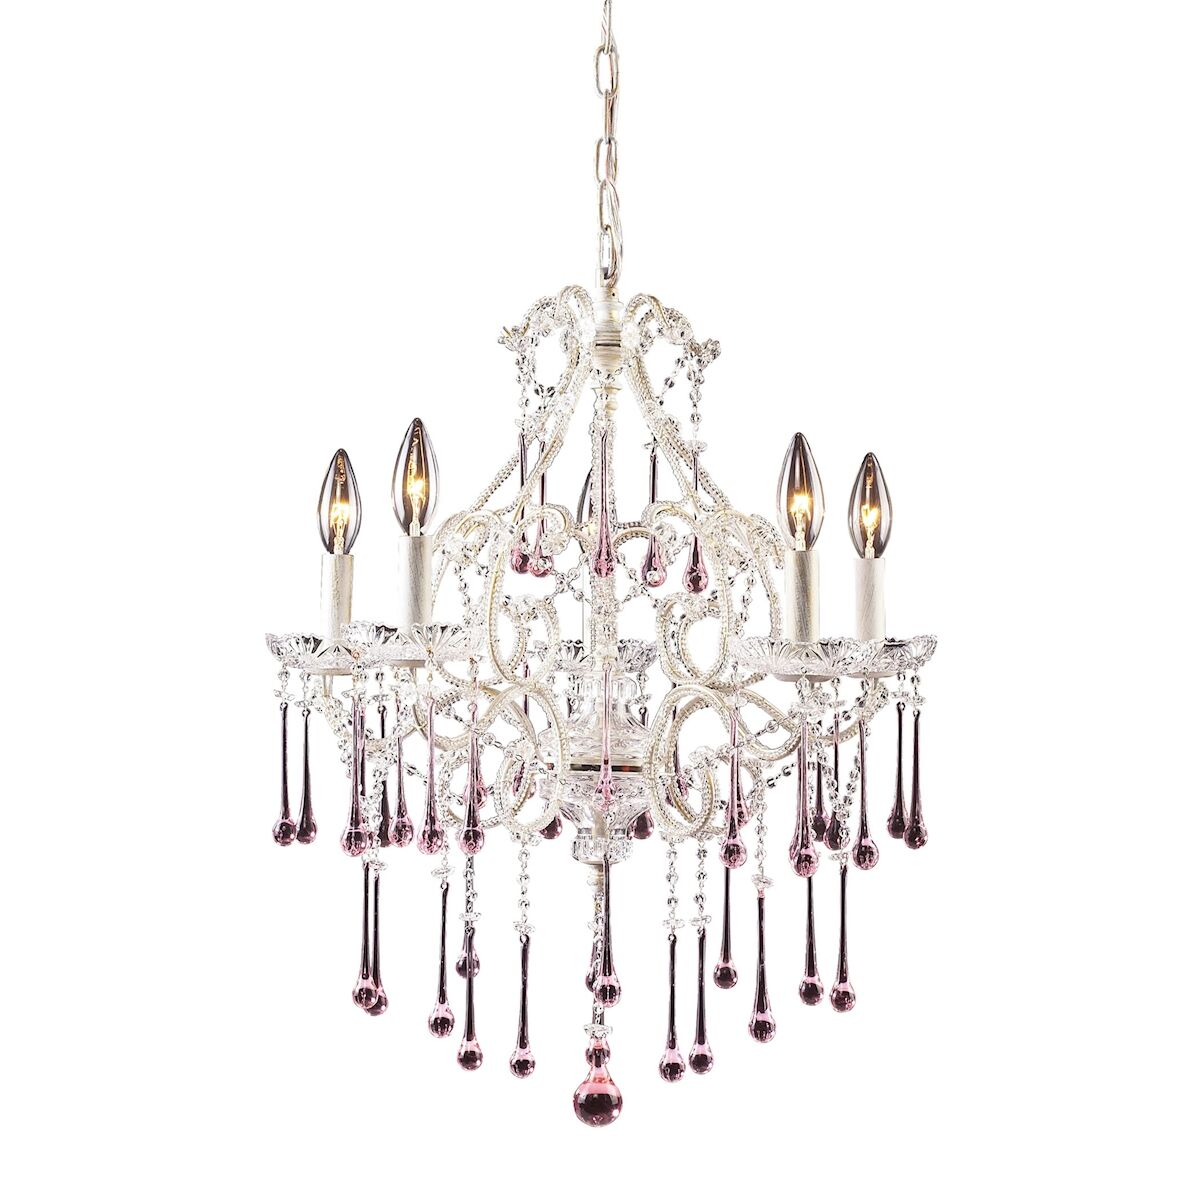 Driffield 5-Light Glass Candle Style Chandelier